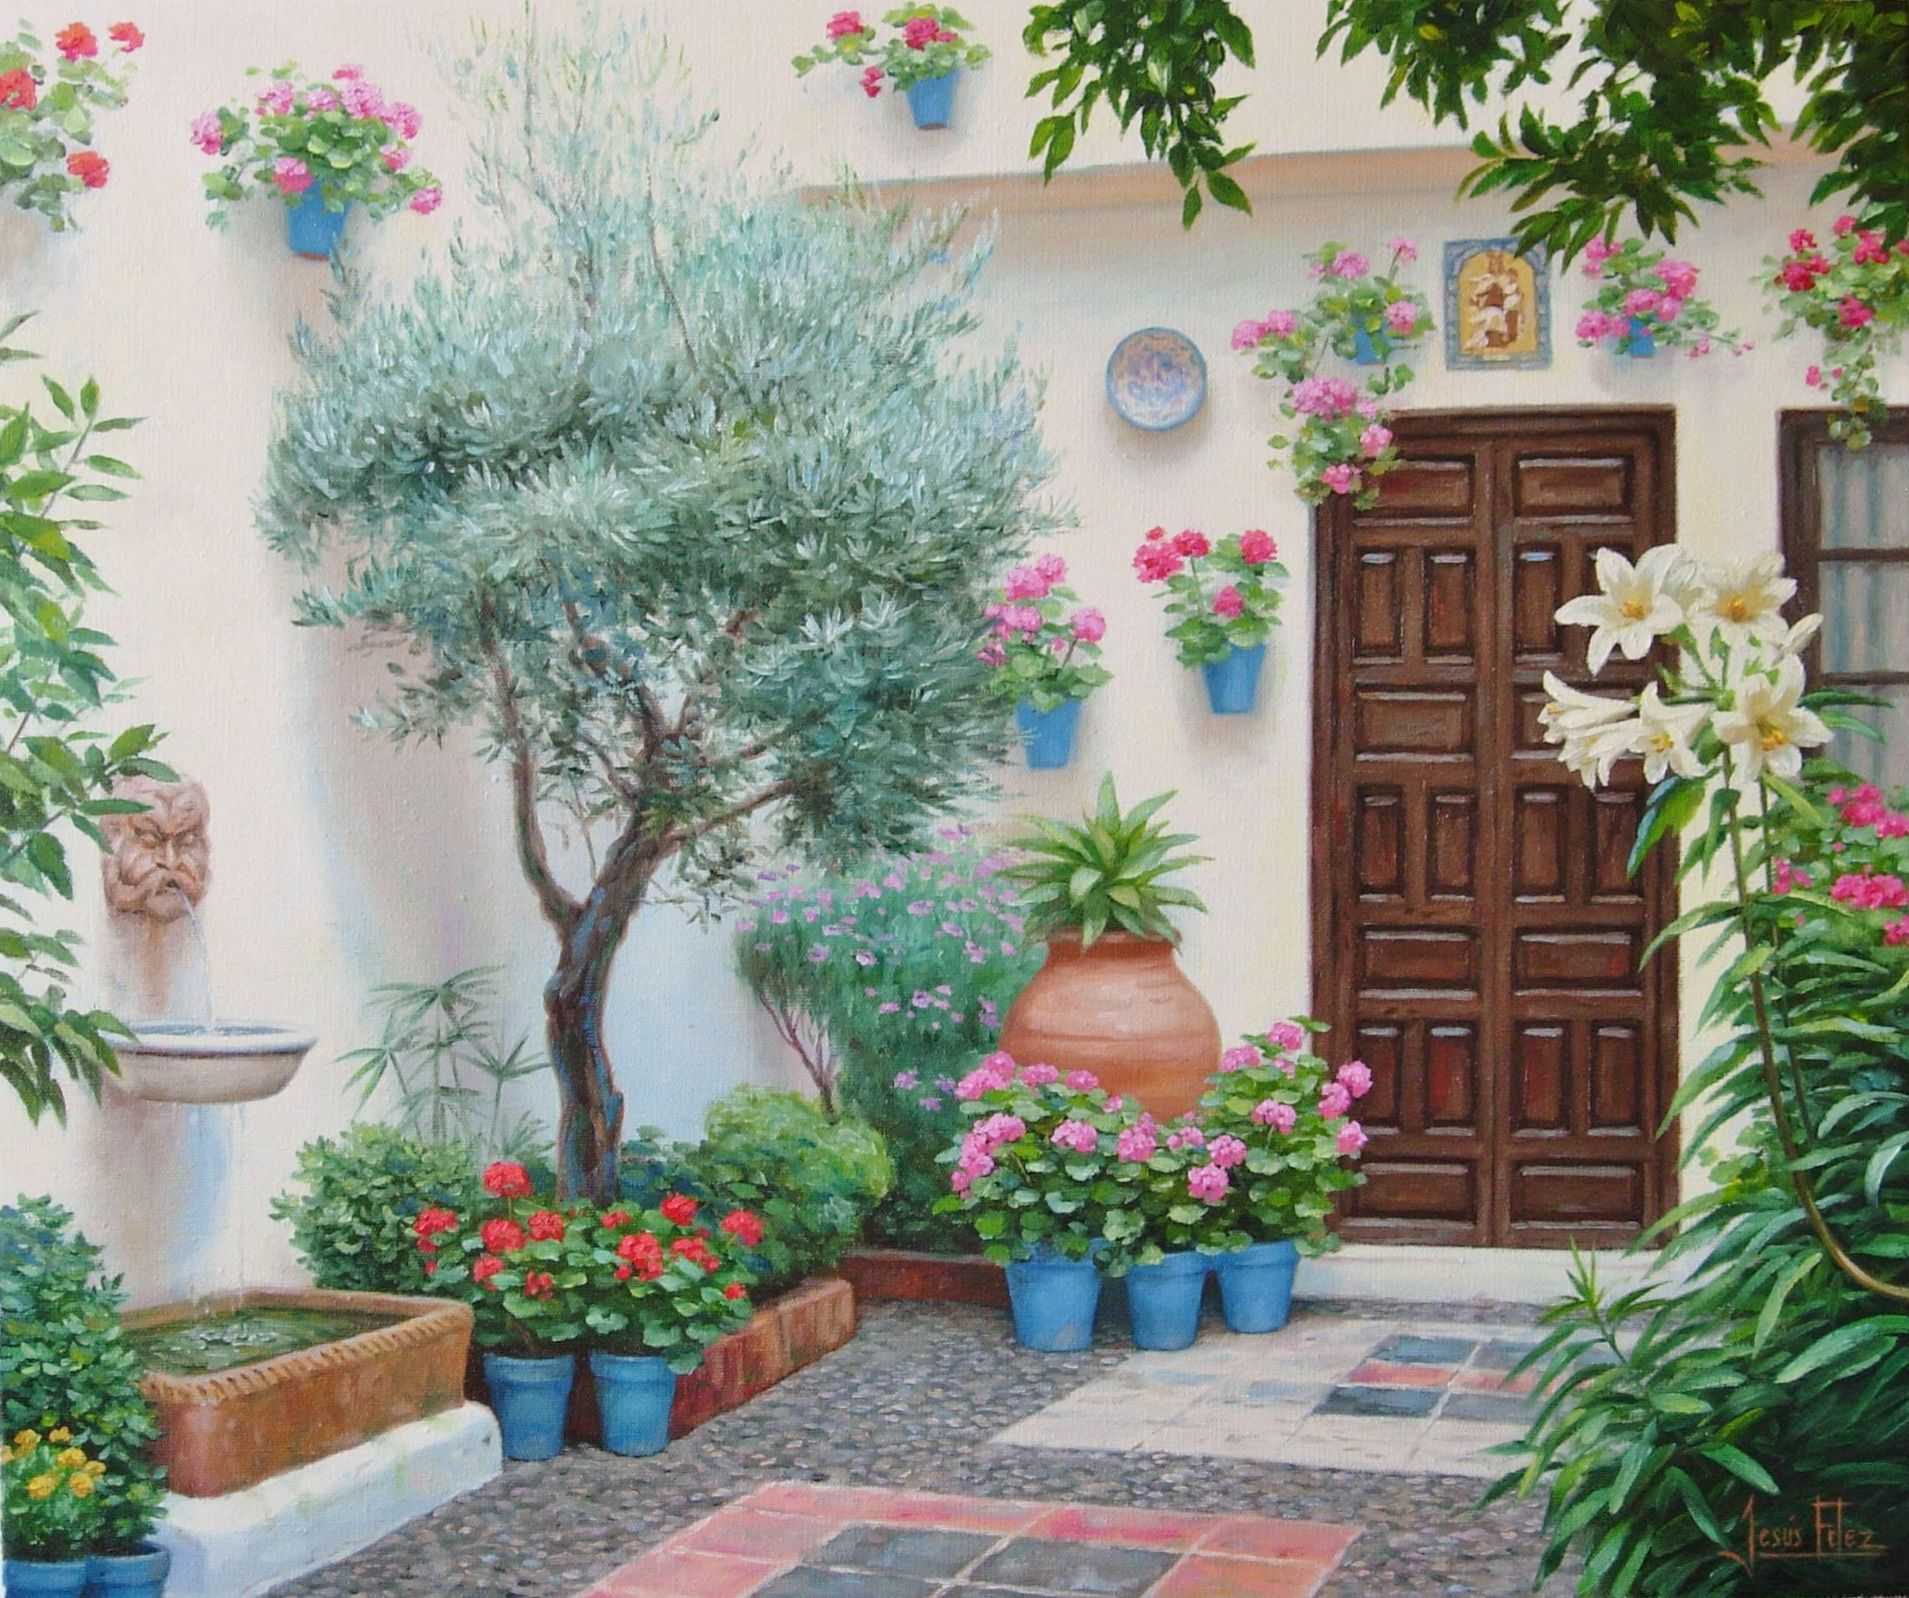 Pin de jes s fern ndez en patios andaluces pinterest - Patios interiores andaluces ...